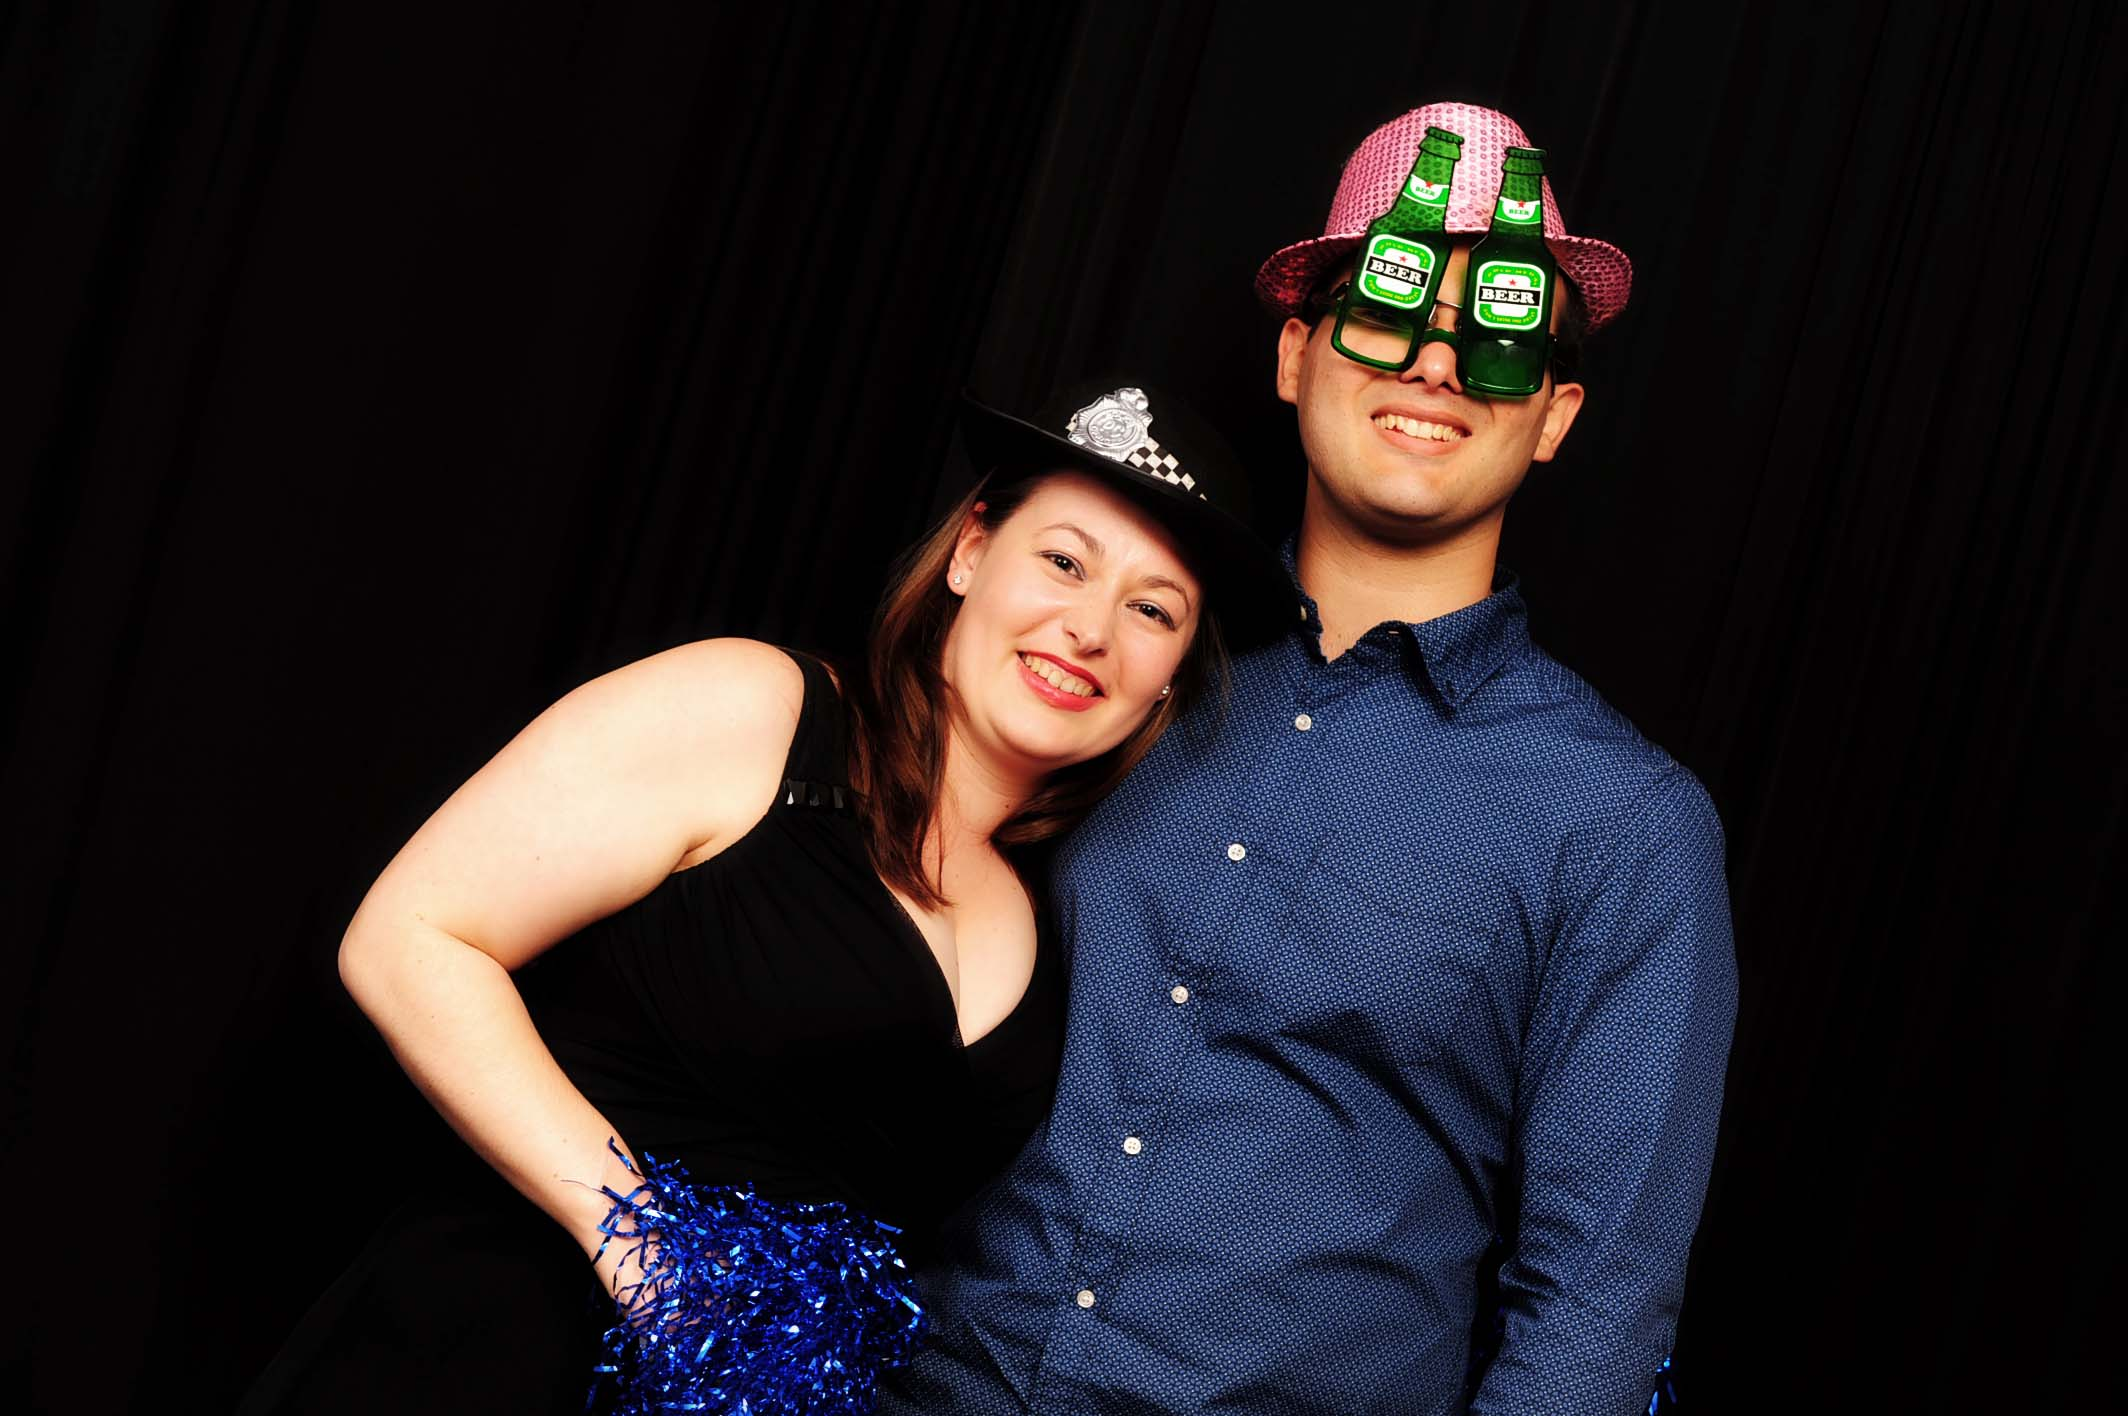 lindsey_30th_149.jpg